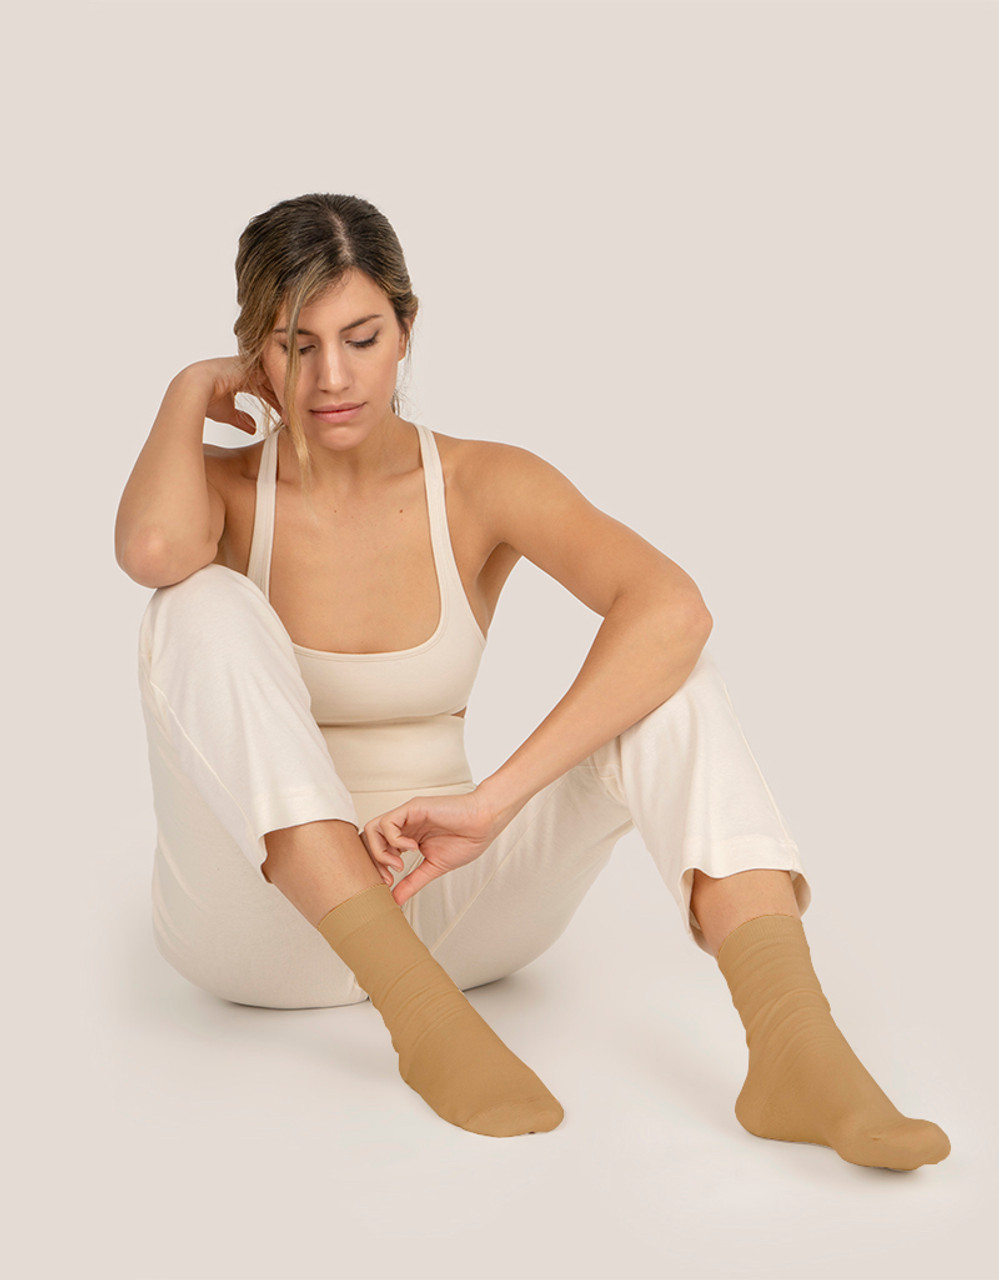 Skin disorders can be caused from contact with fabrics that have been highly processed with toxic substances